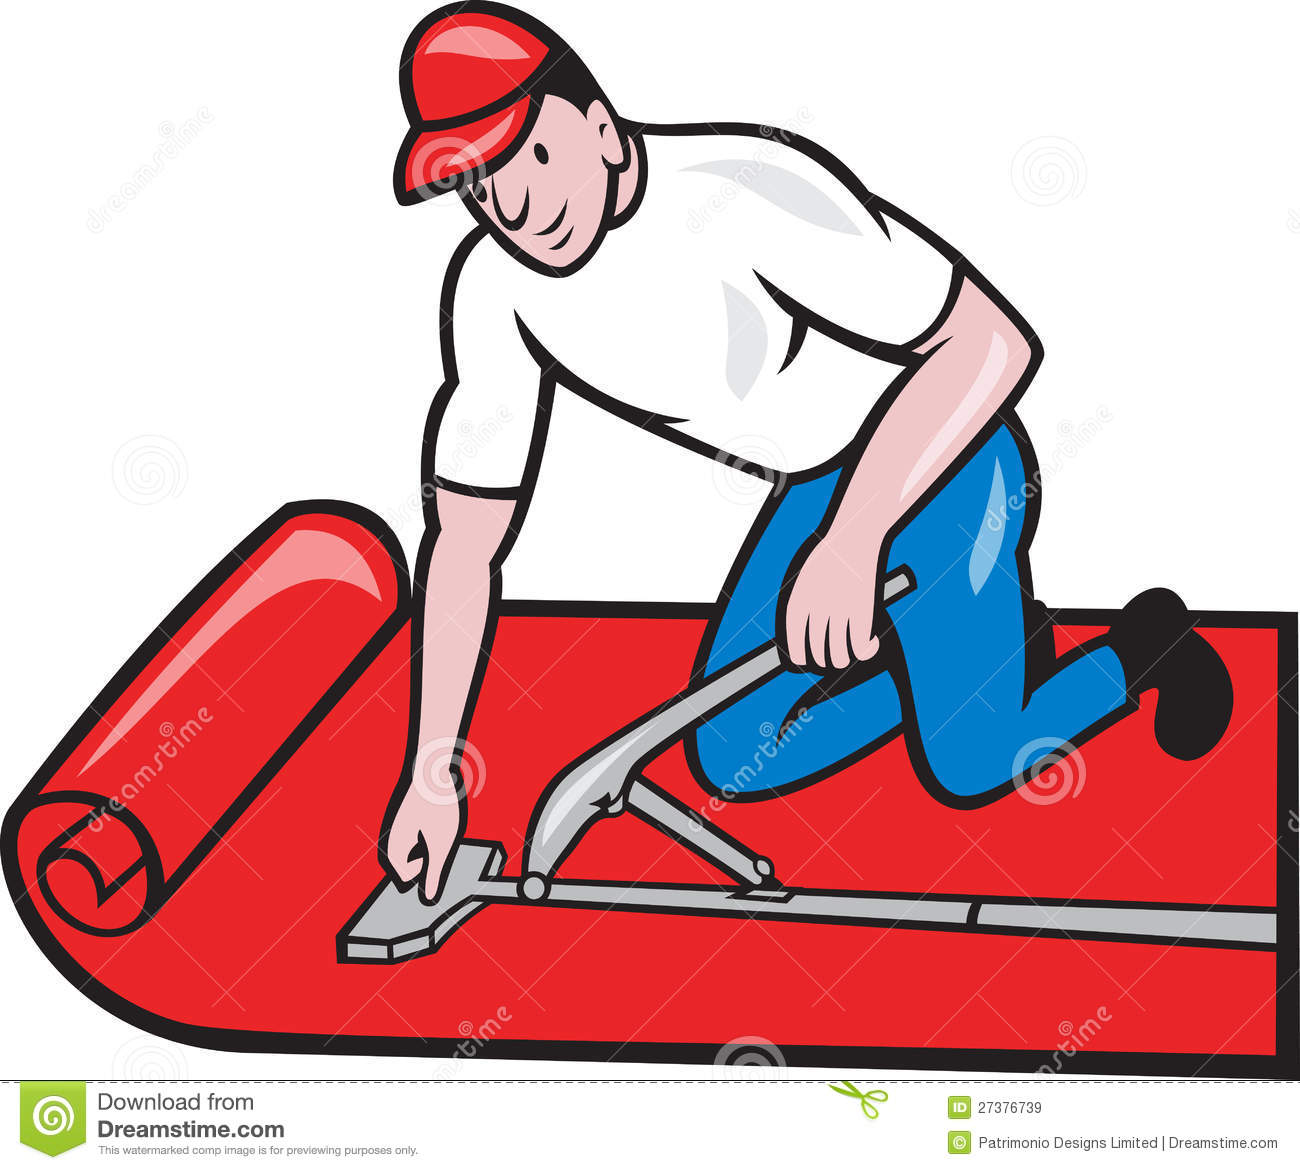 Carpet Installation Tools Clip Art